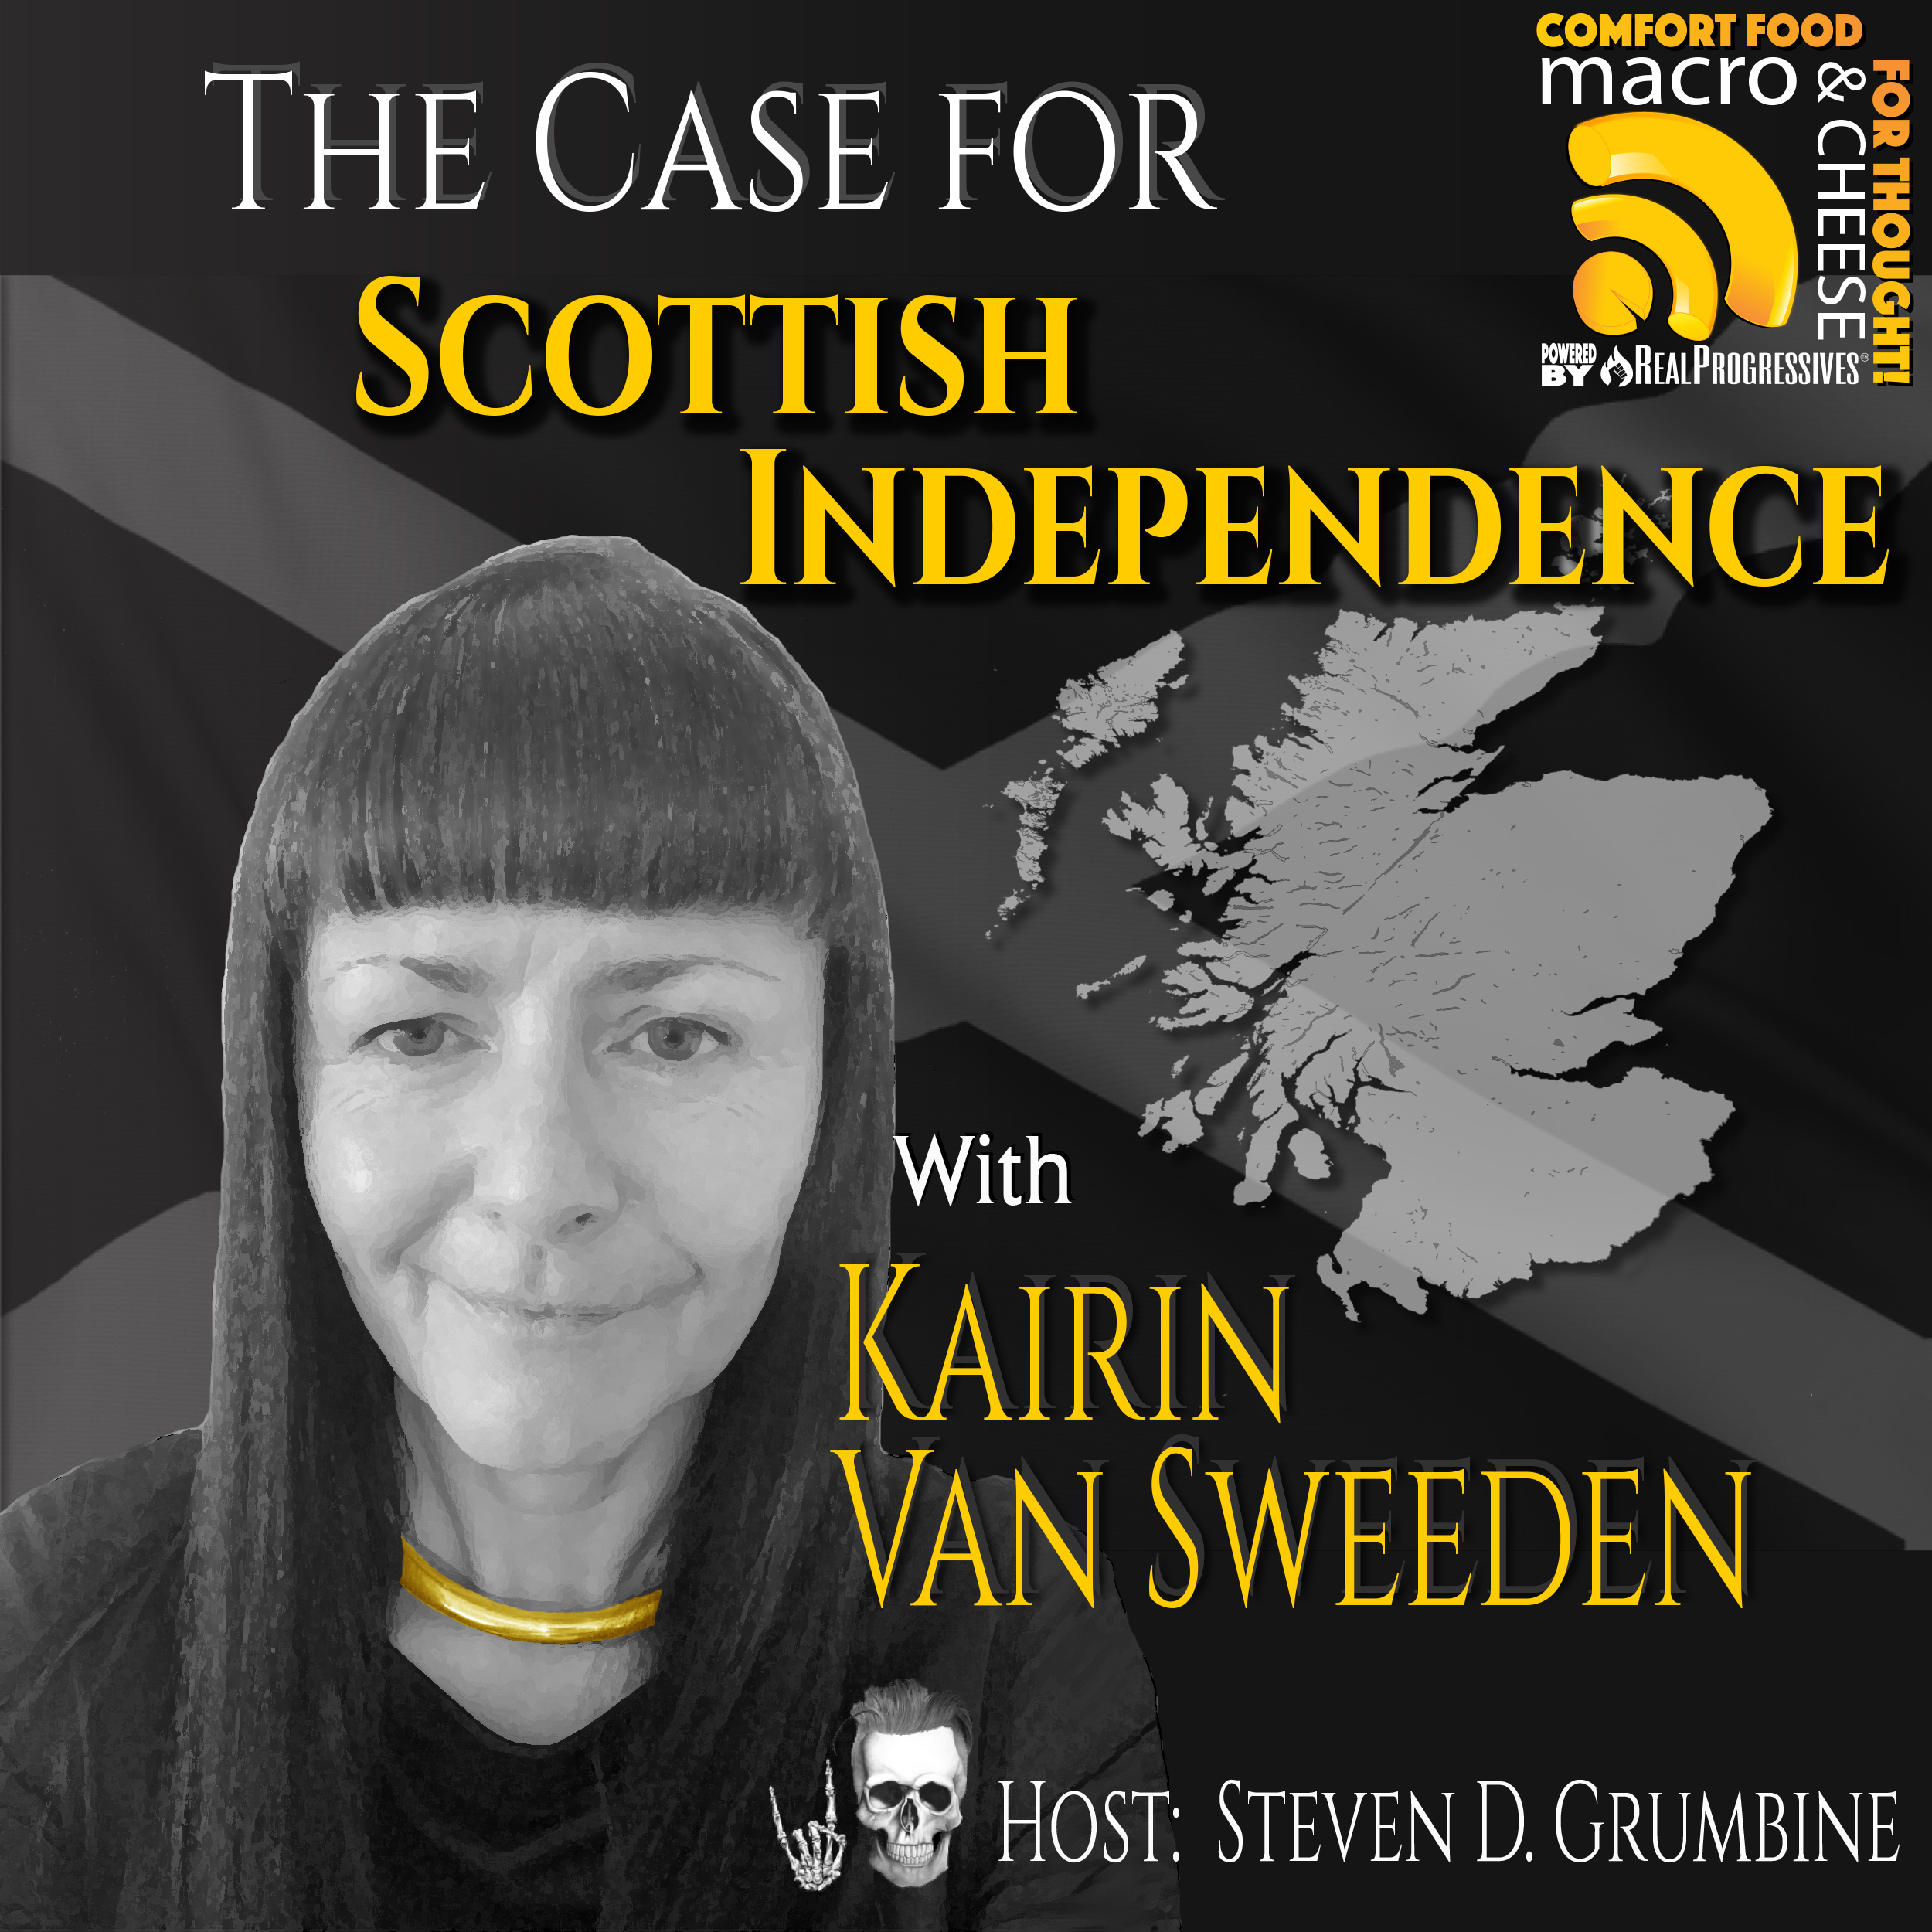 The Case for Scottish Independence with Kairin Van Sweeden